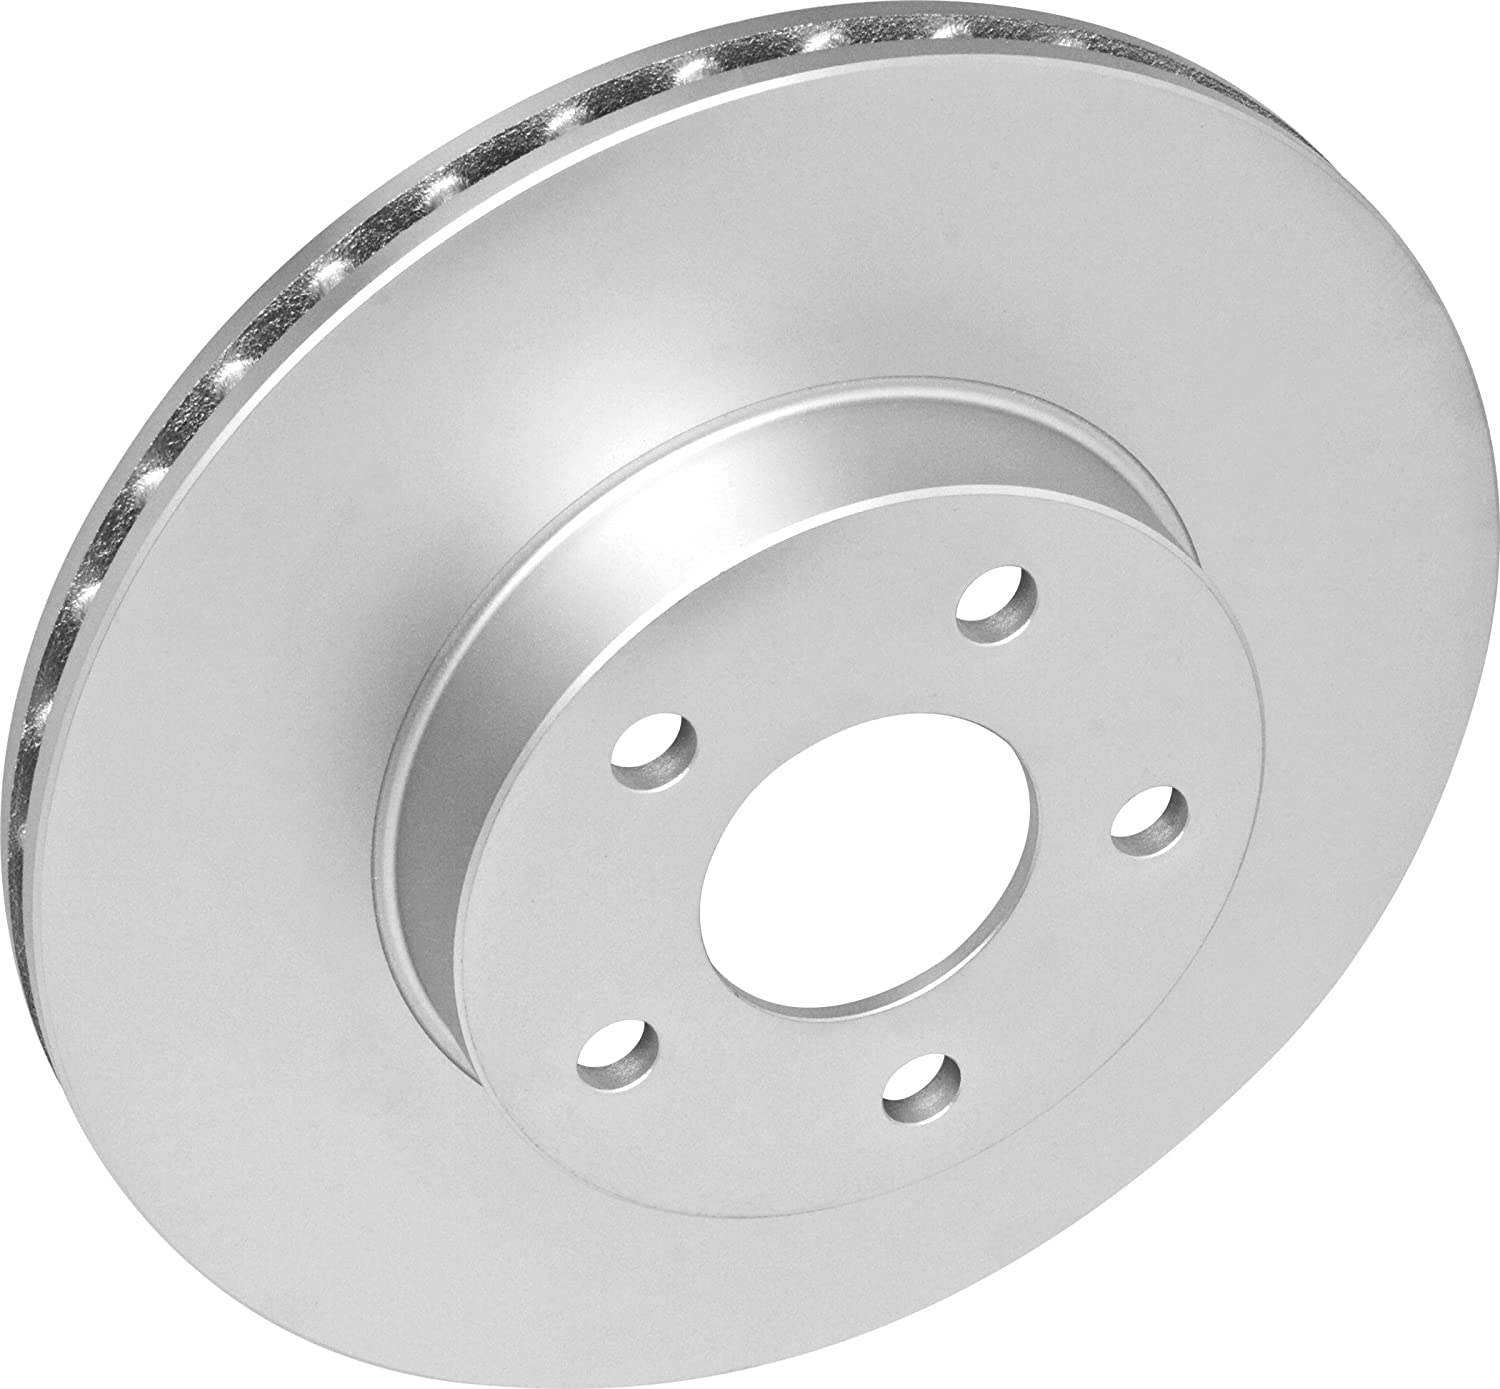 Bosch 26011426 QuietCast Premium Disc Brake Rotor For 2009-2014 Acura TL; Rear